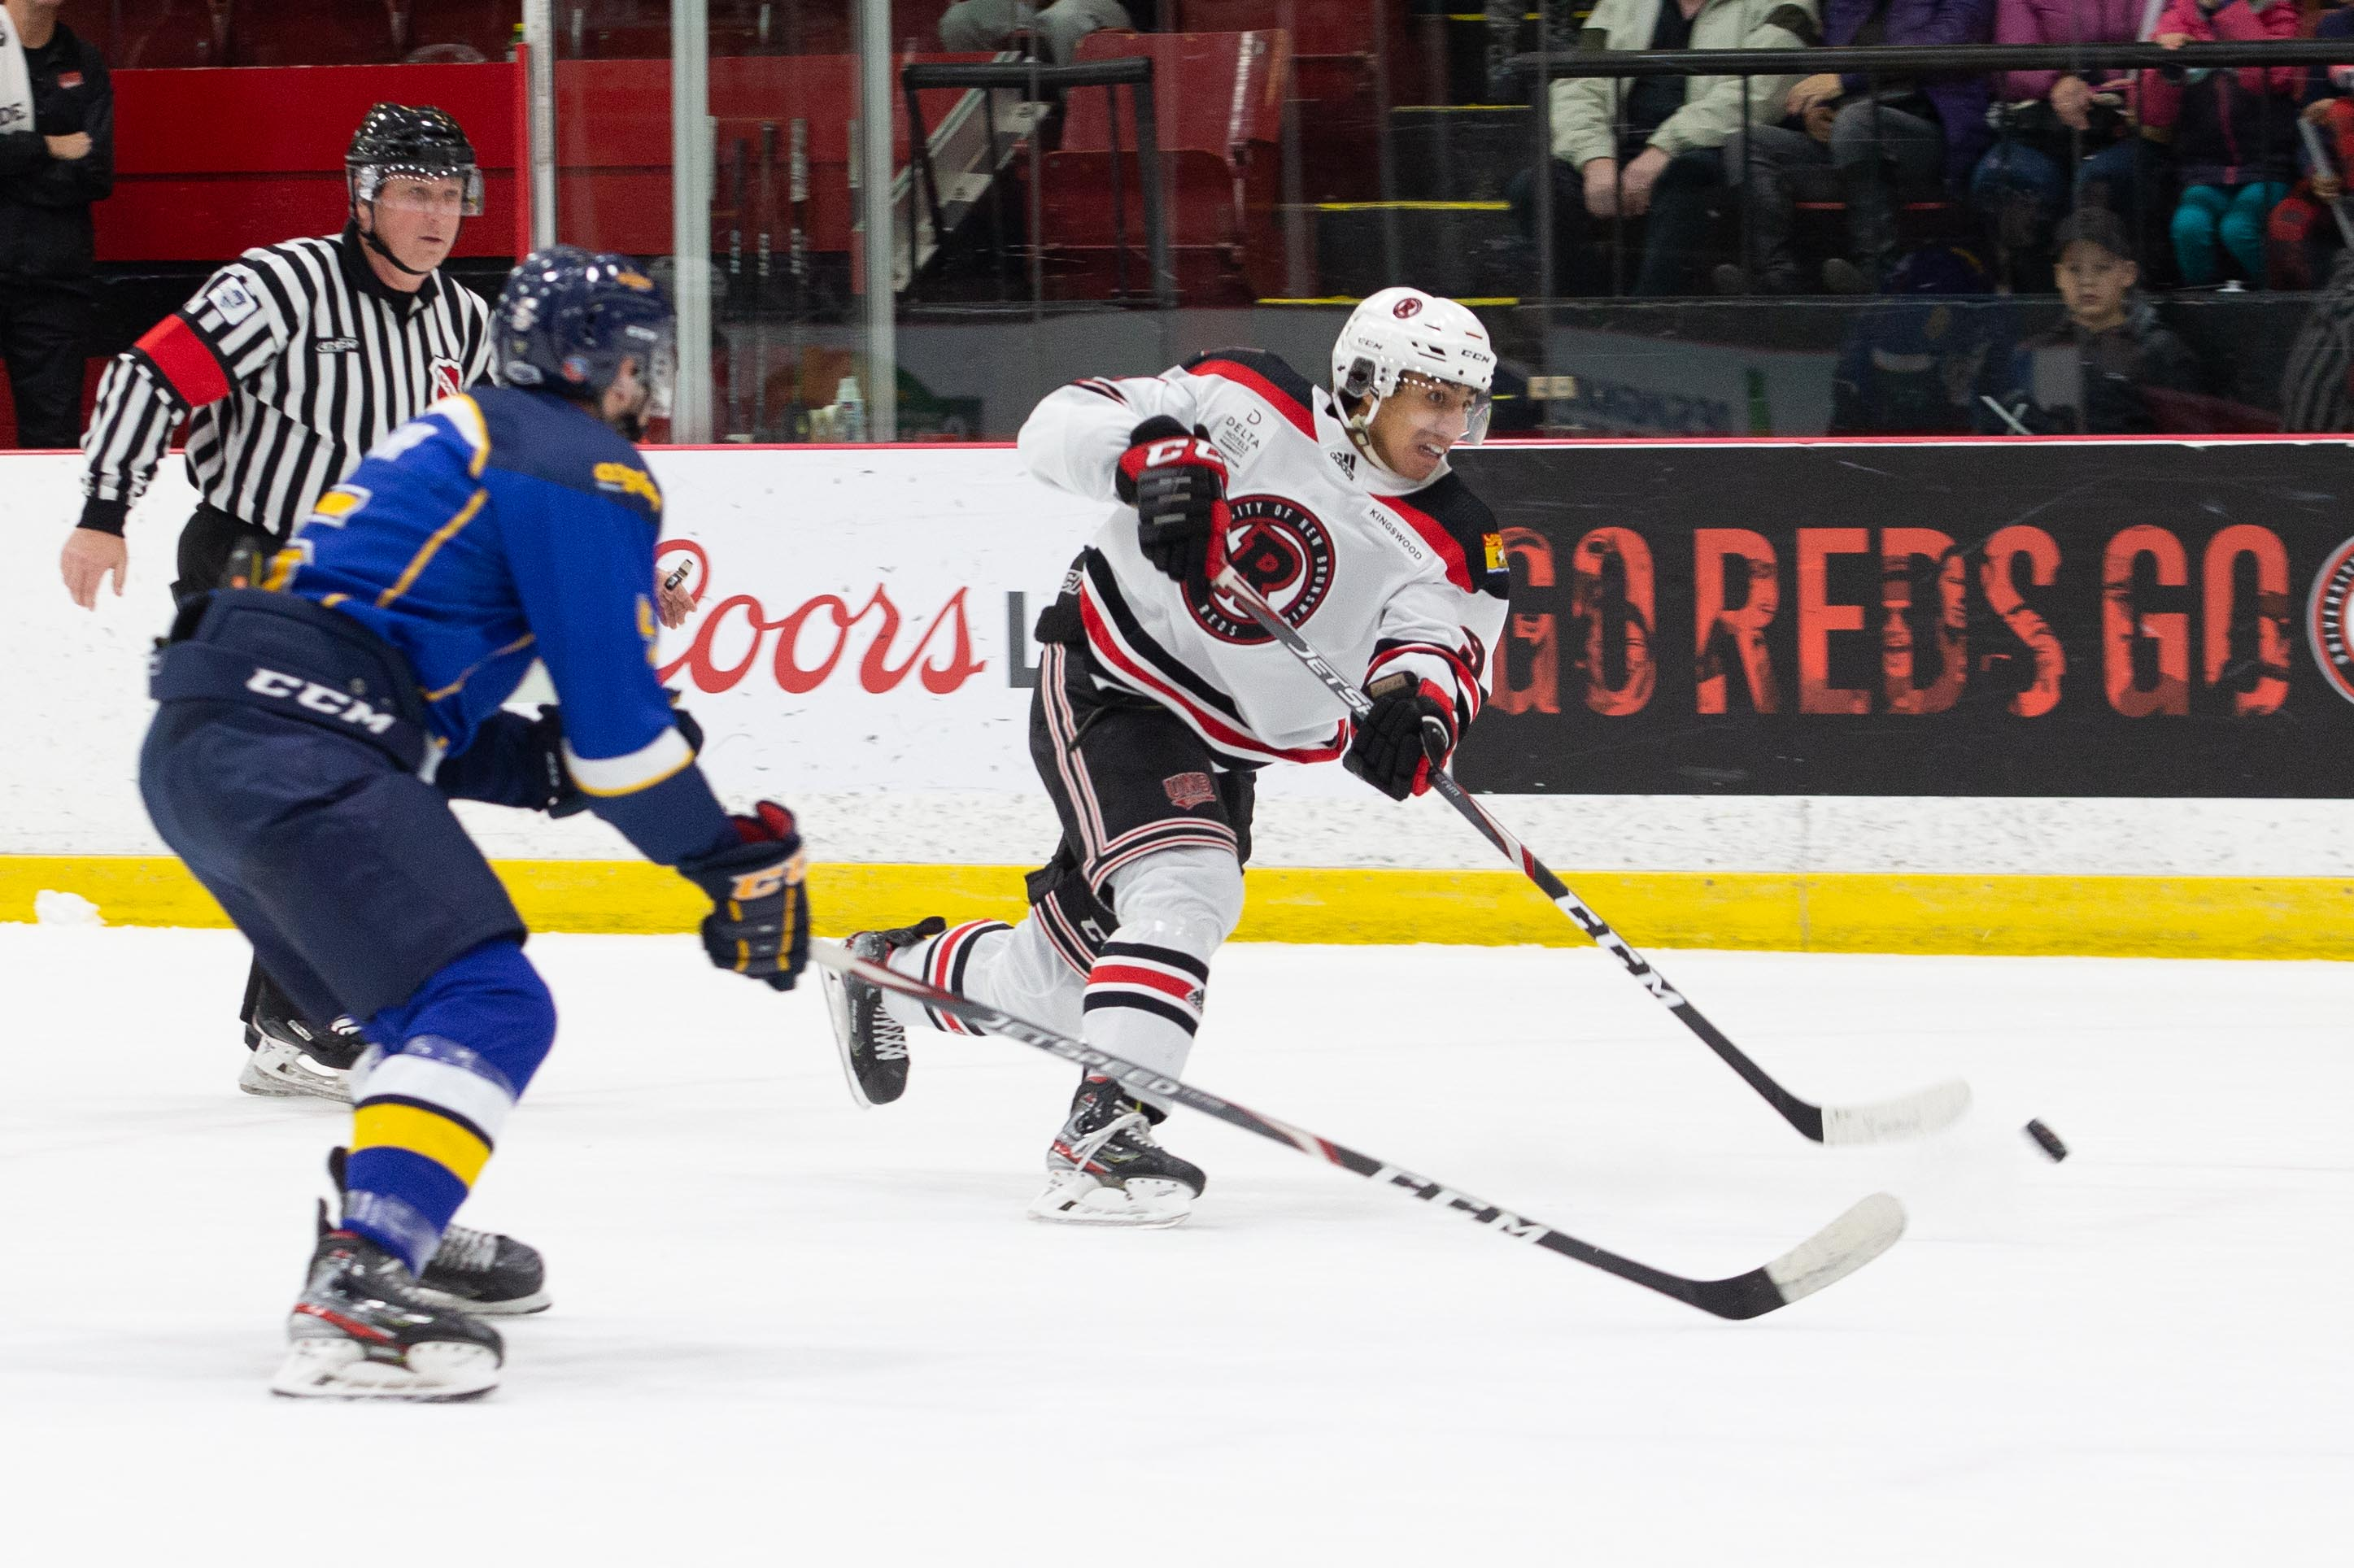 UNB_VS_MONCTON_MEN_S_HOCKEY_(23_of_25).jpg (548 KB)